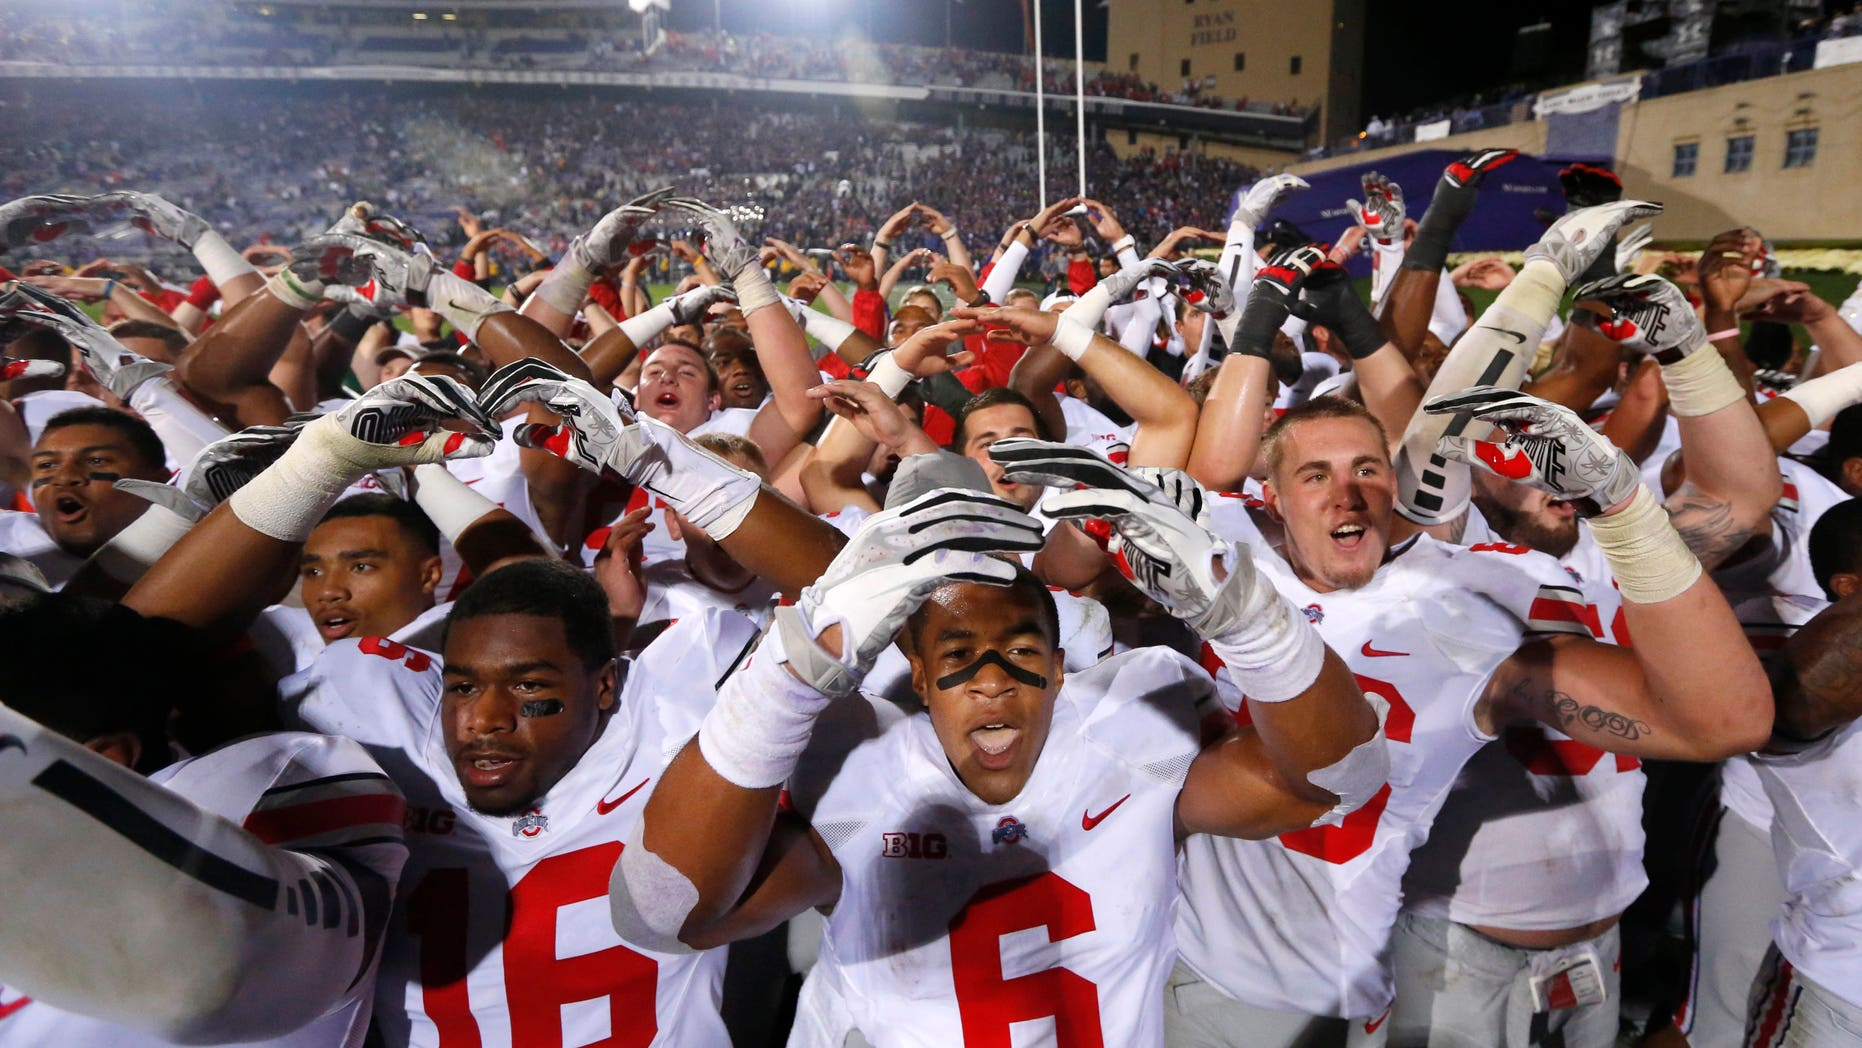 FILE-In this Saturday, Oct. 5, 2013 file photo shows The Ohio State Buckeyes celebrating a 40-30 win over Northwestern after an NCAA football game in Evanston, Ill. Over its bye week, Ohio State's players and coaches had a chance to see other top teams. They came away thinking the Buckeyes could play with any of them. (AP Photo/Charles Rex Arbogast, File)